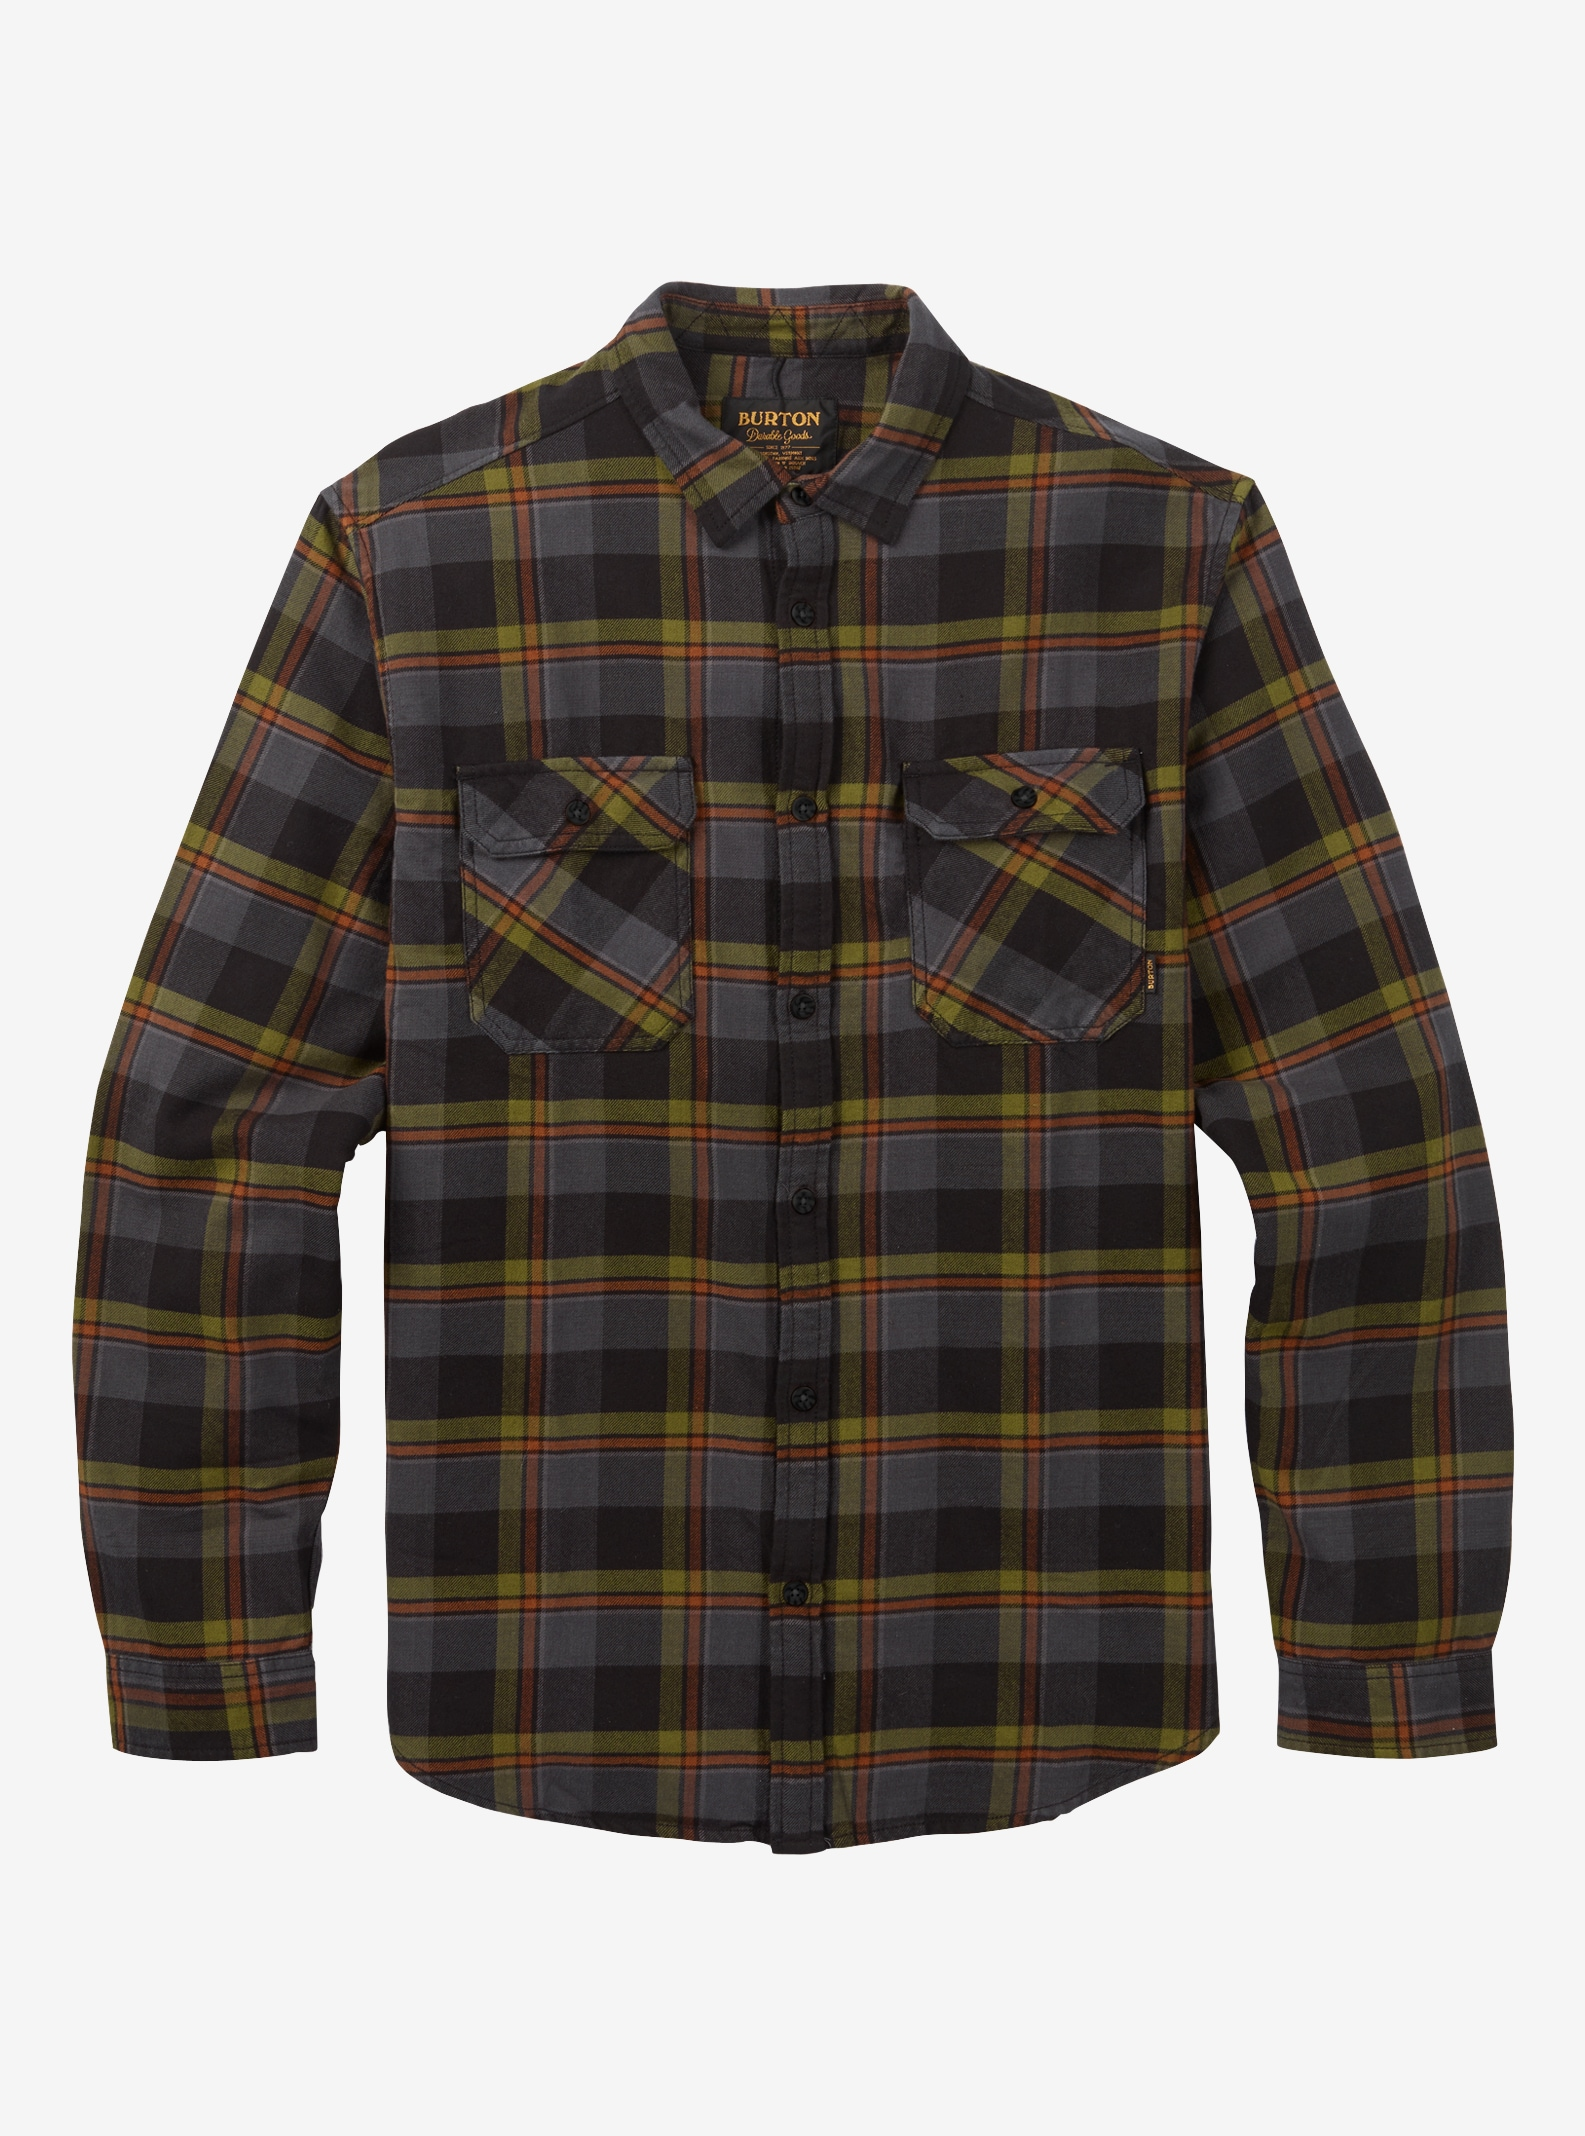 Men's Burton Brighton Flannel shown in Olive Branch Hawthorn